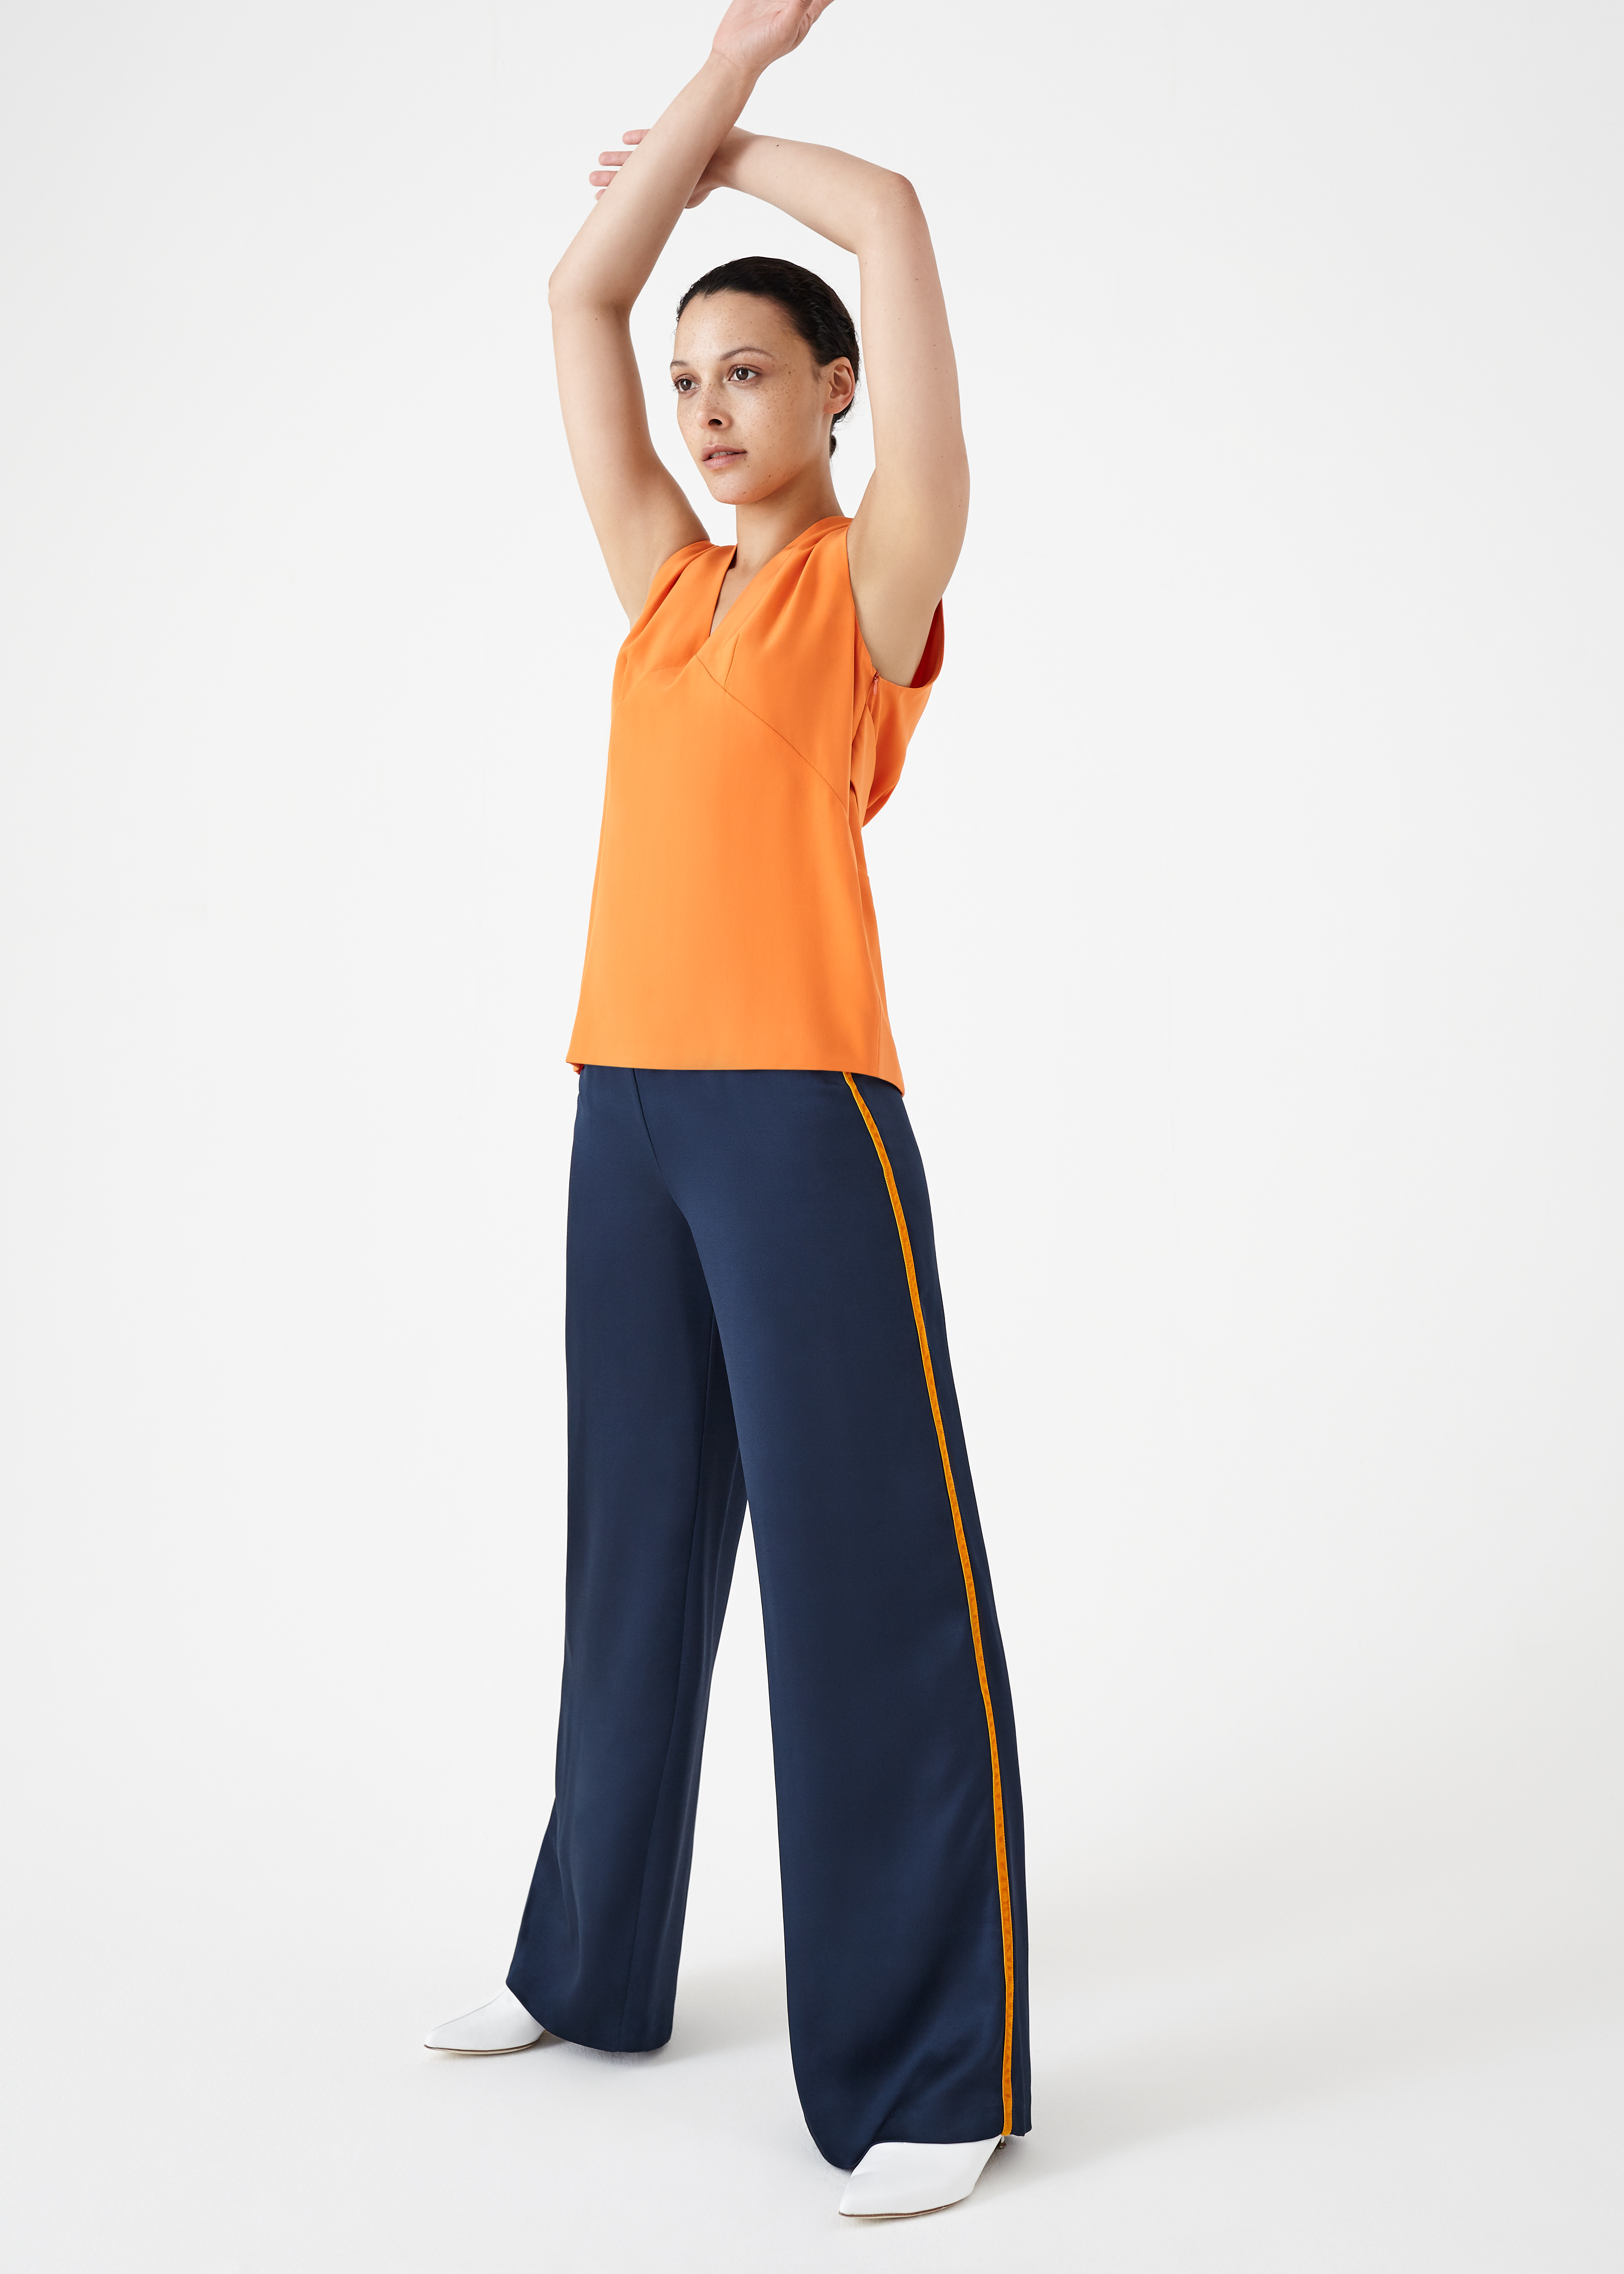 Elysian Blue Trousers by Bozena Jankowska on curated-crowd.com